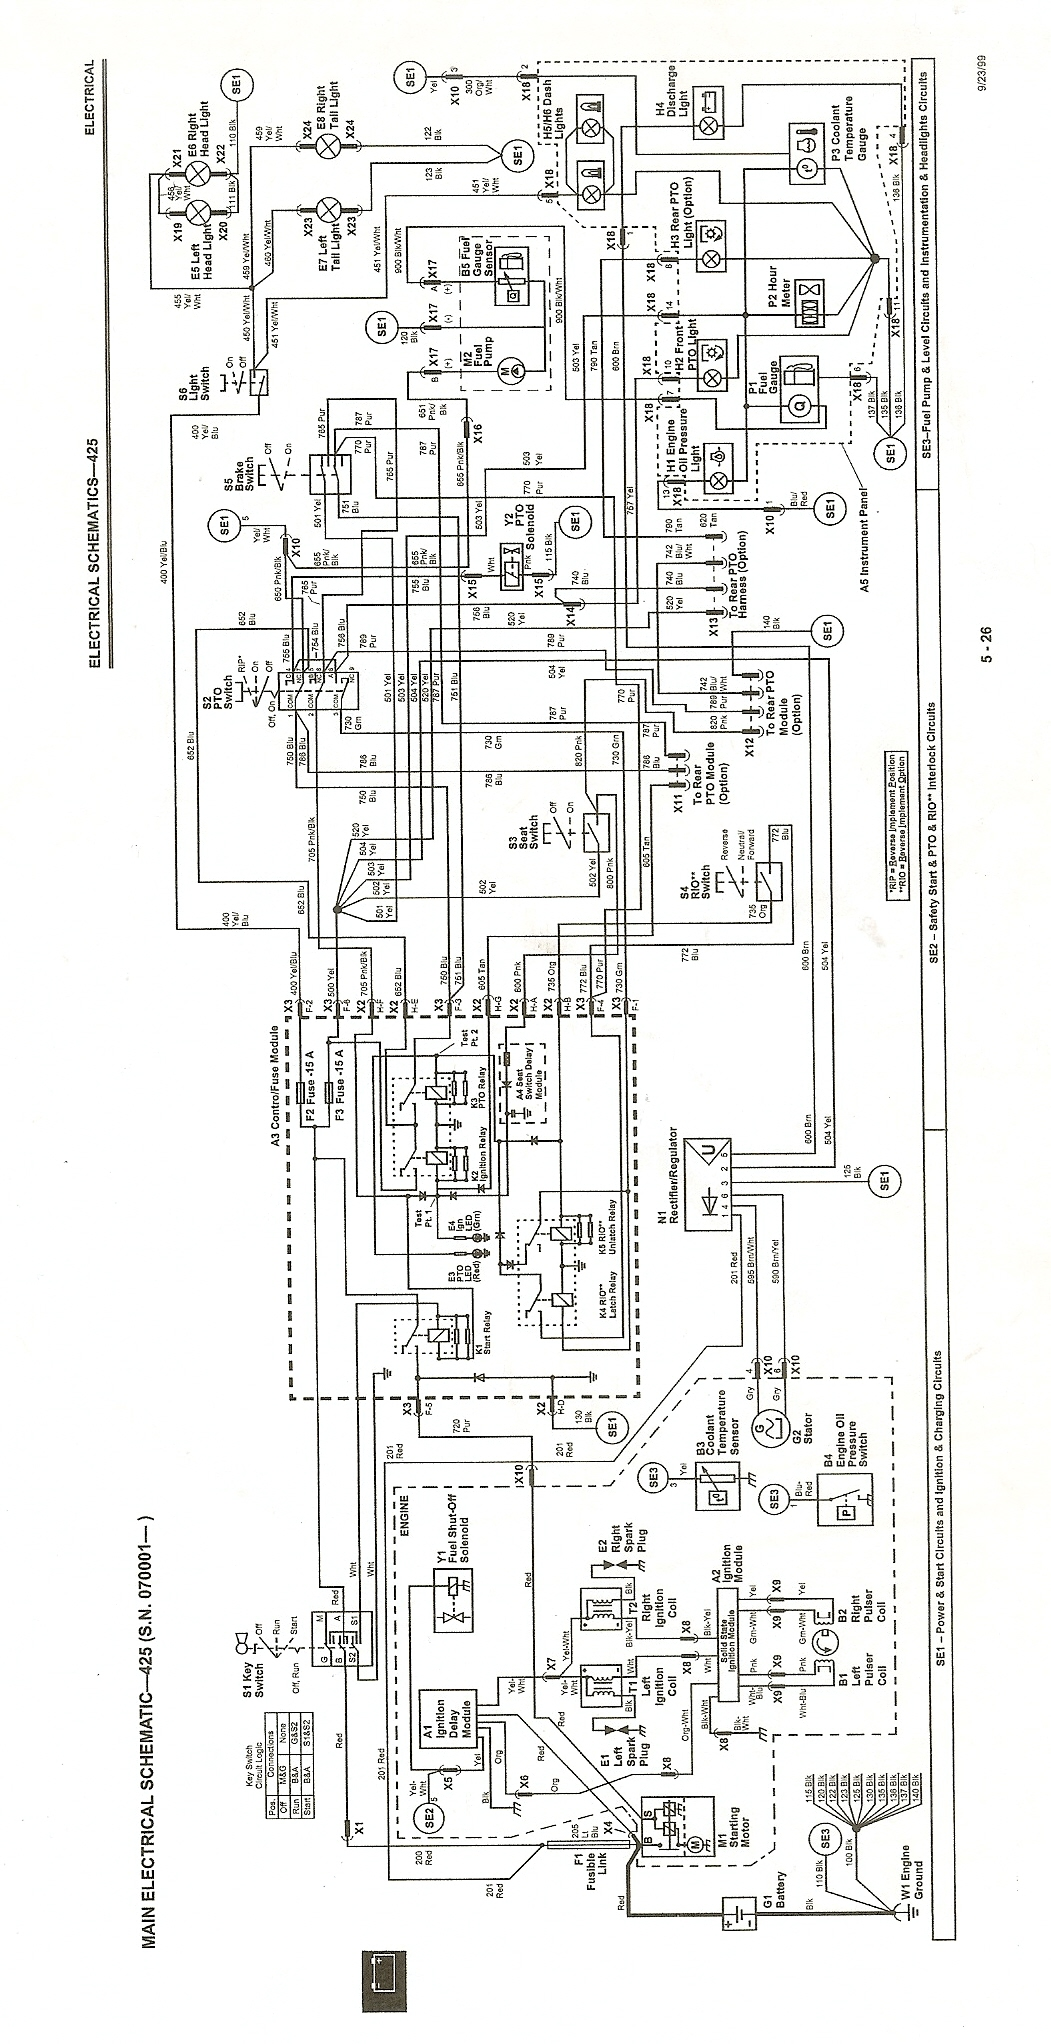 John Deere 425 Wiring Diagram from www.greentractortalk.com